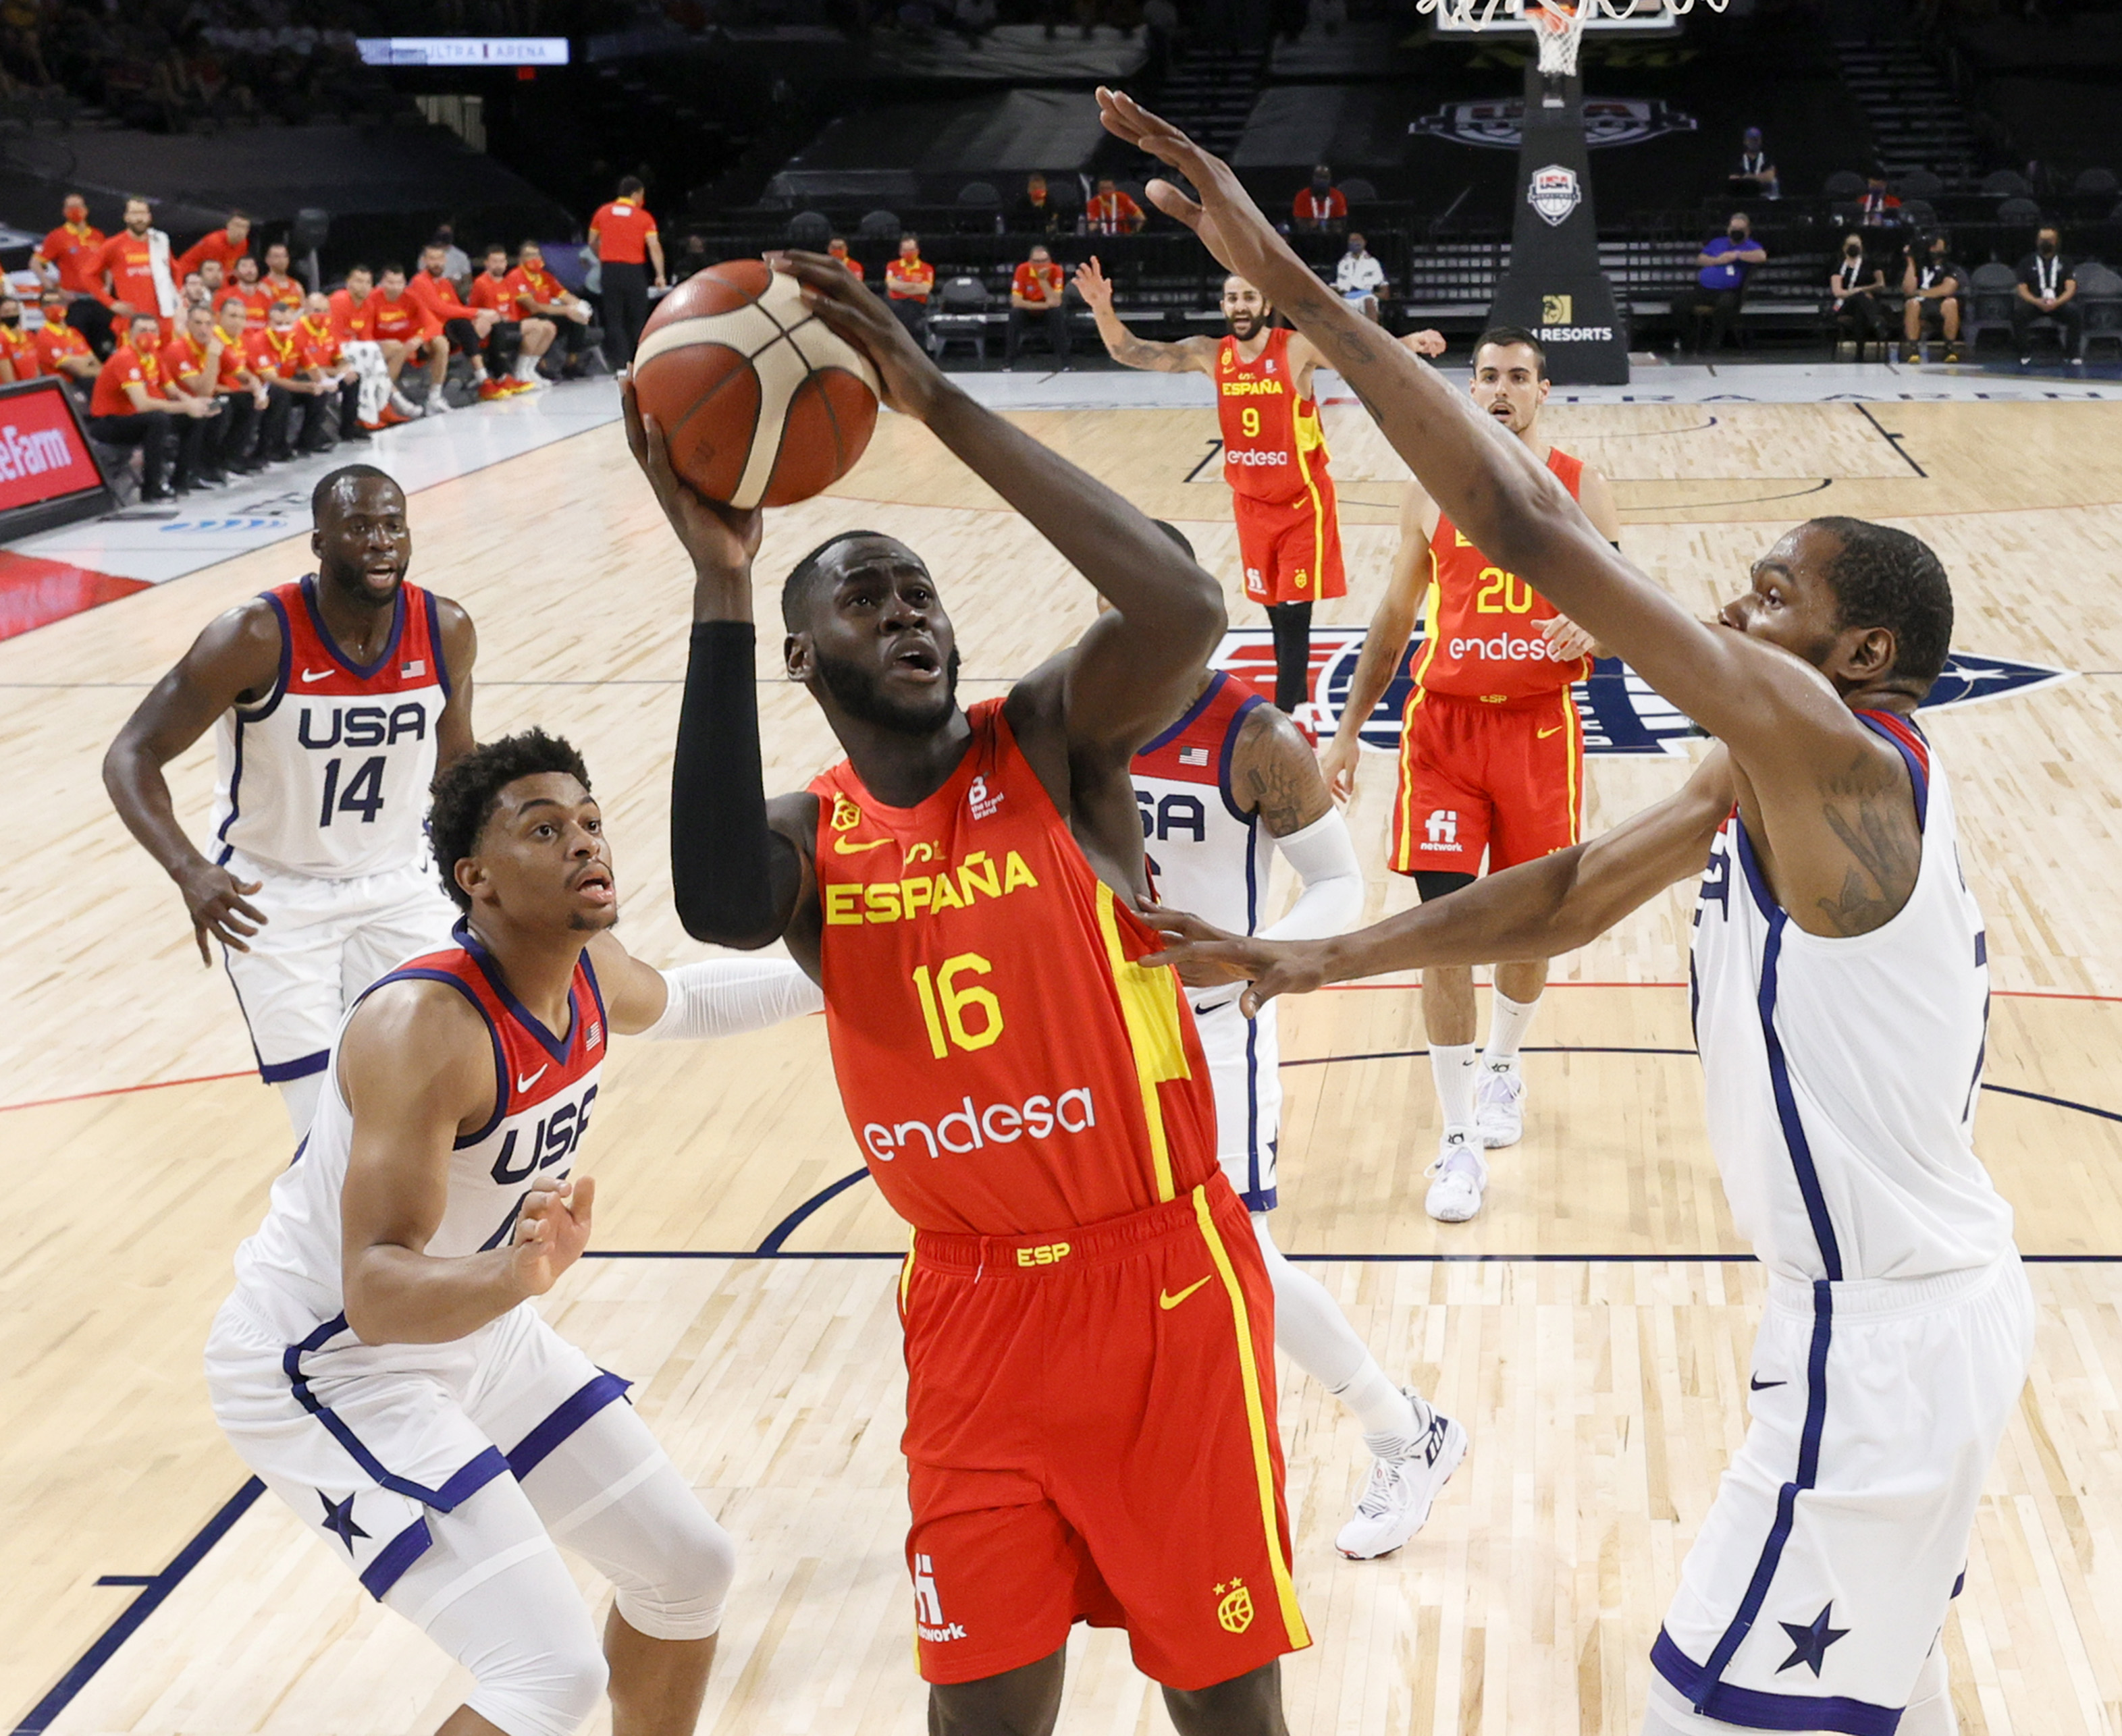 Real Madrid has more players than any other team at the Olympic basketball tournament